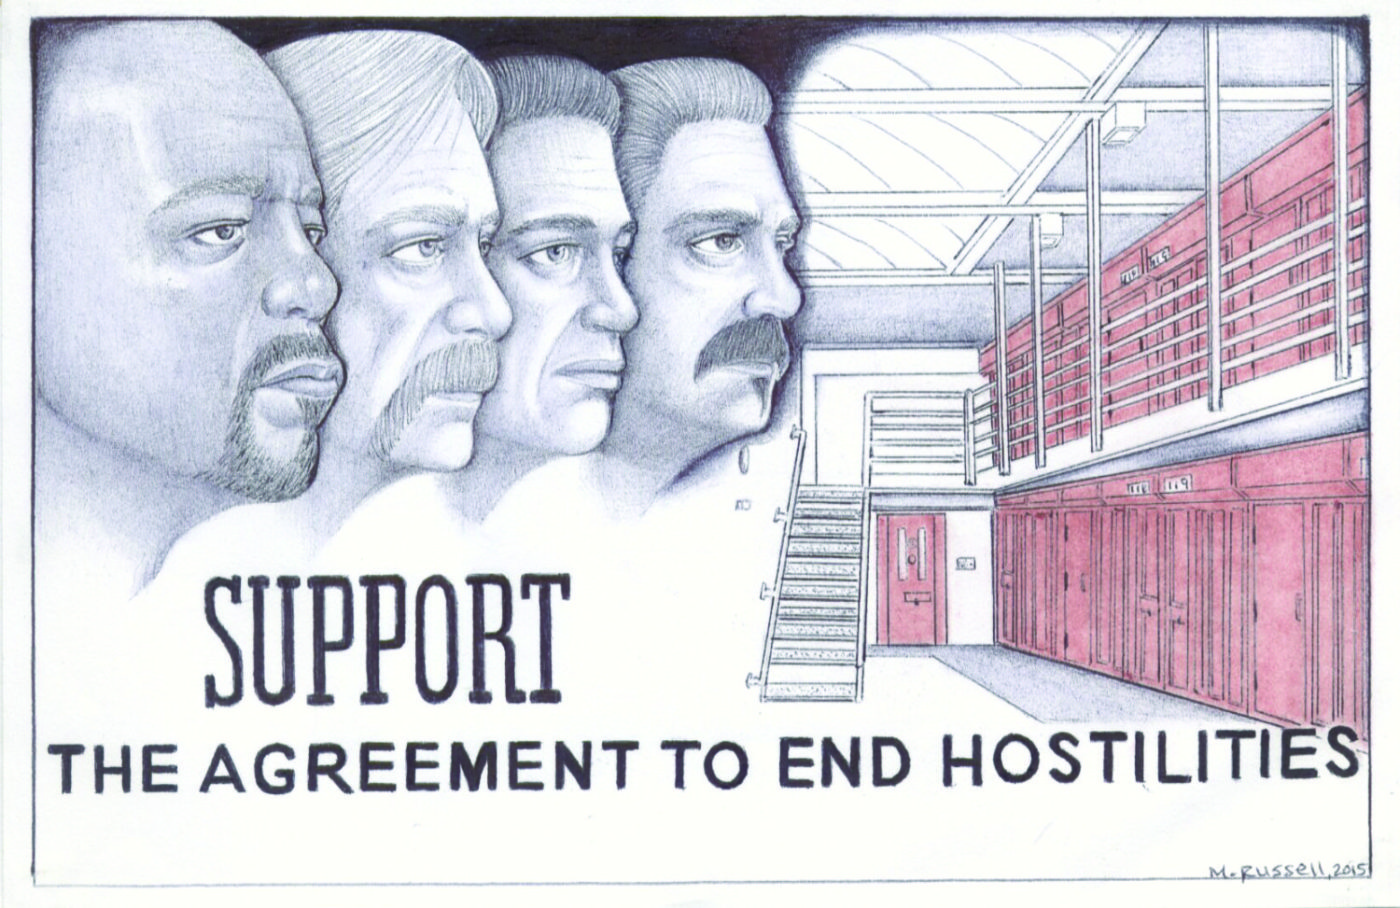 Support-the-Agreement-to-End-Hostilities-art-by-Michael-D.-Russell-1400x908, Agreement to End Hostilities, Behind Enemy Lines